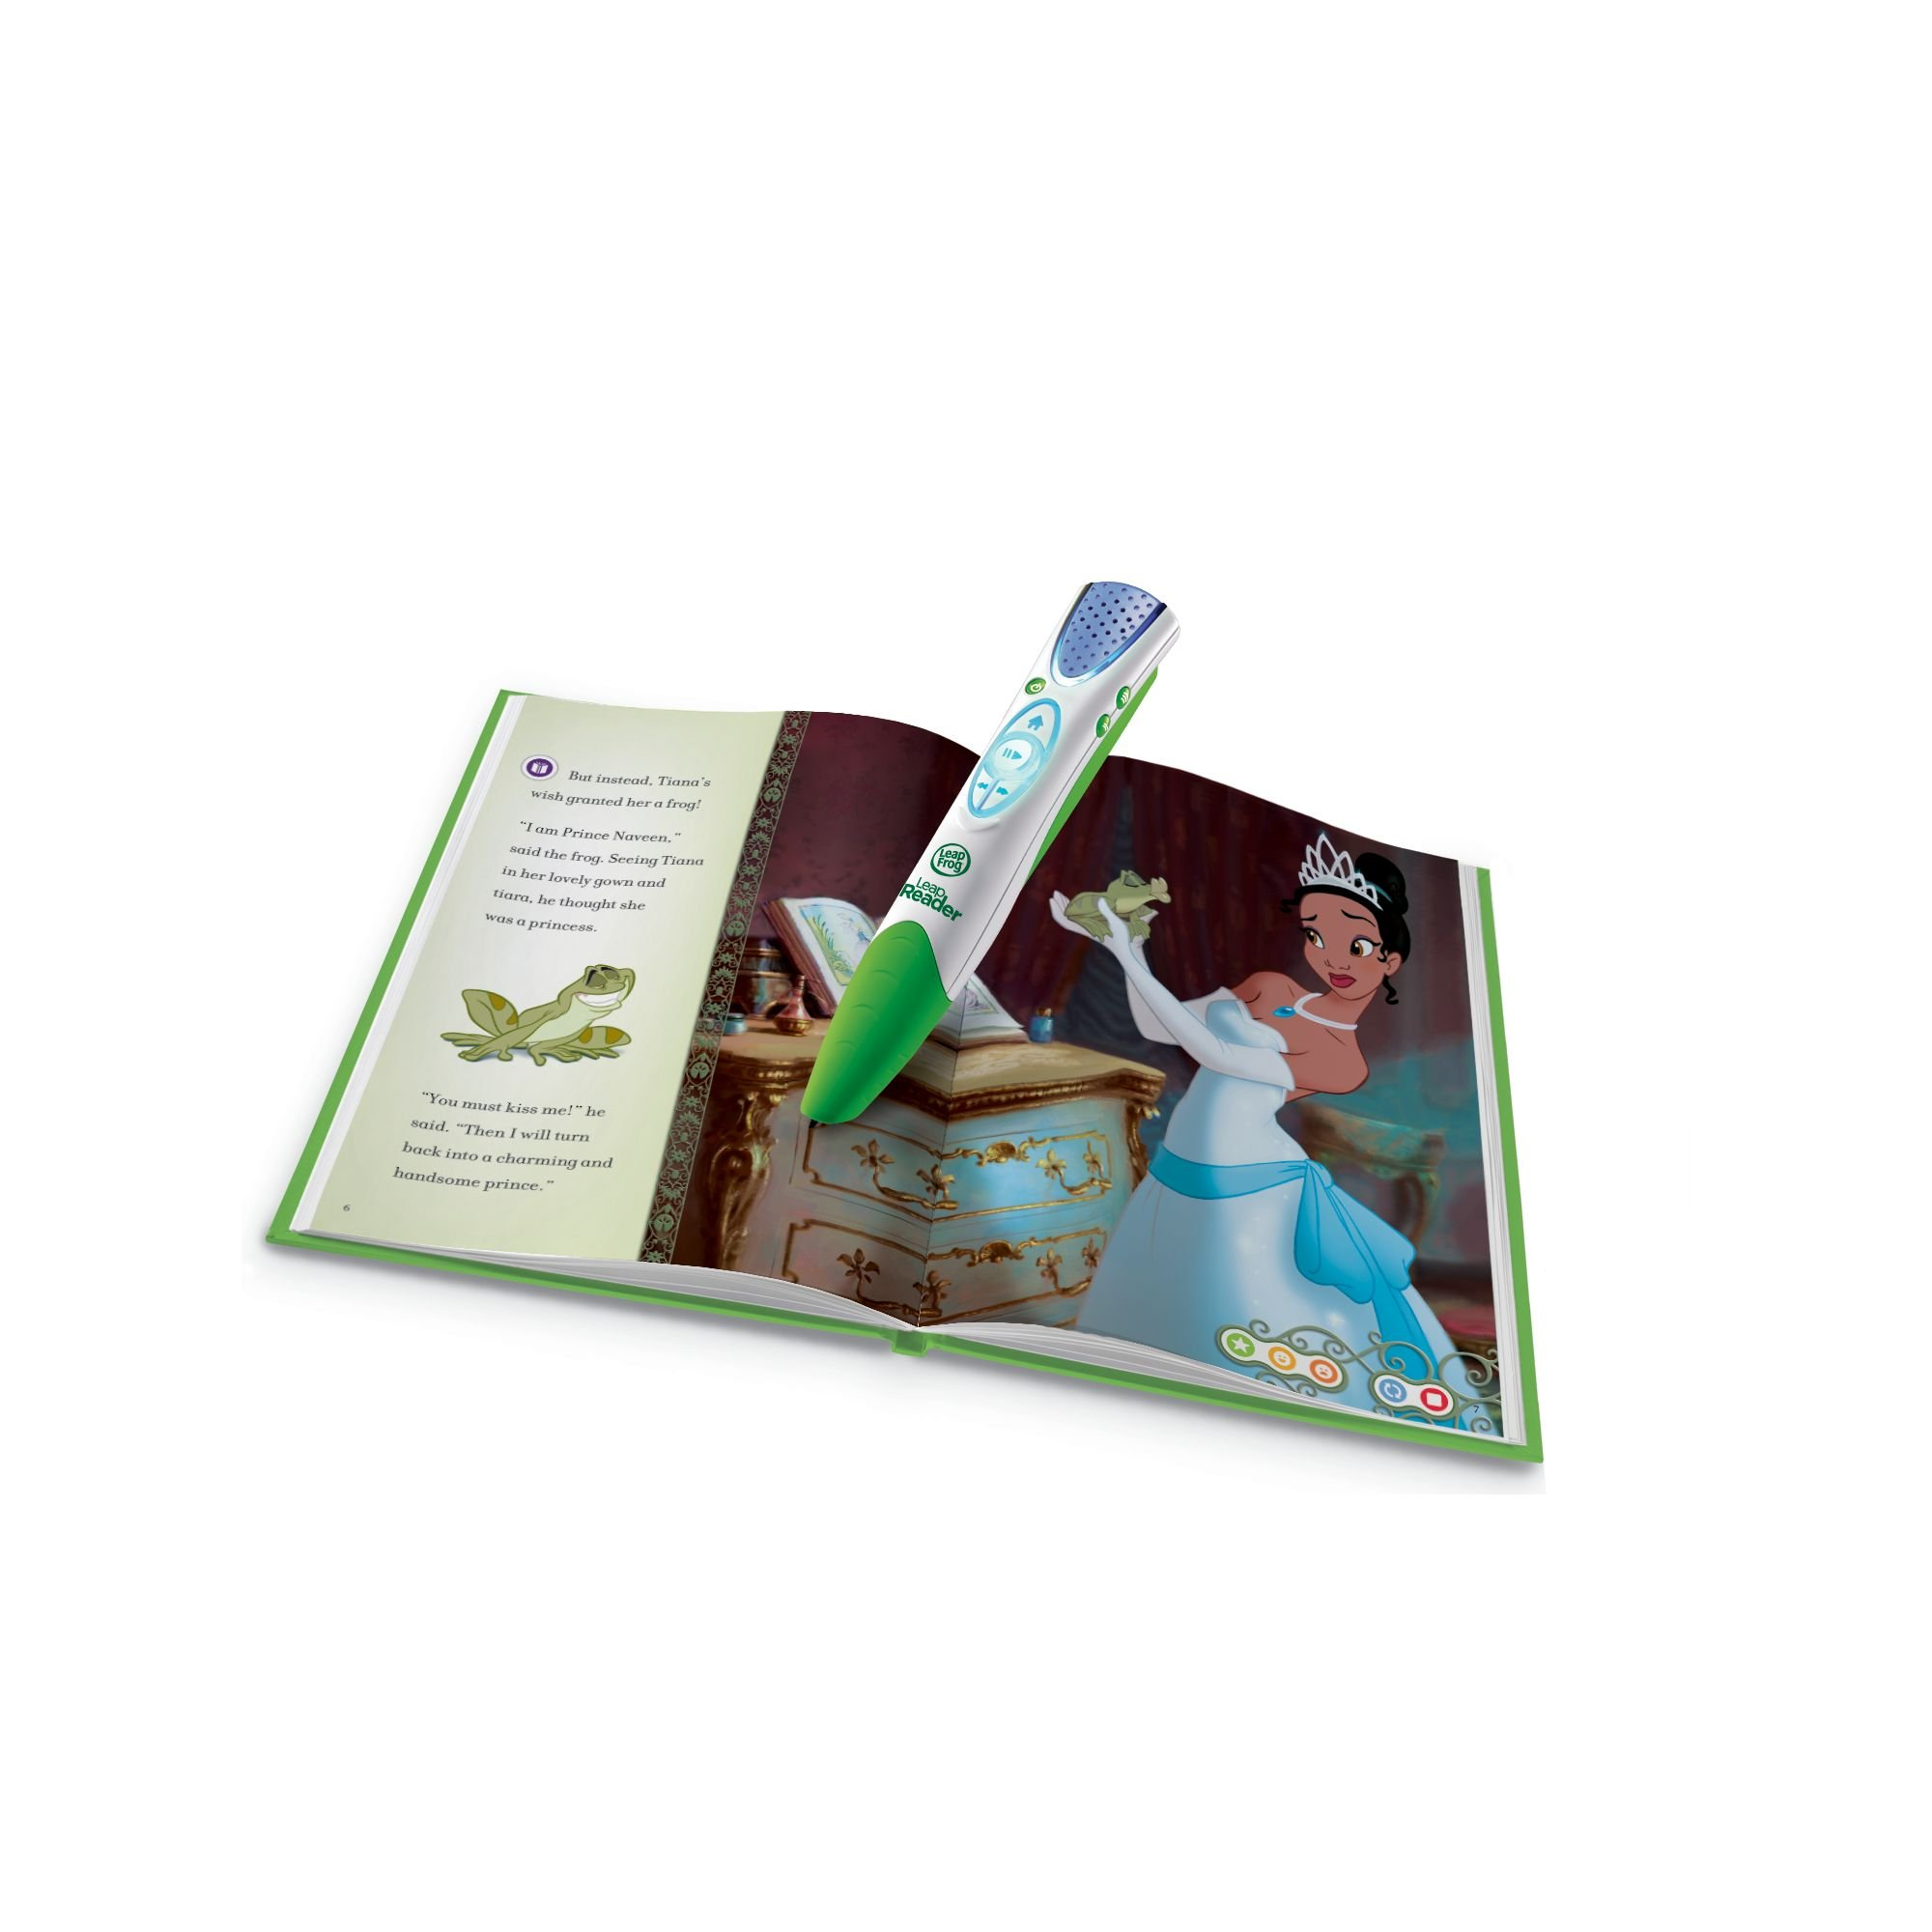 LeapFrog LeapReader Book: Disney Princess and the Frog (works with Tag) by LeapFrog (Image #2)